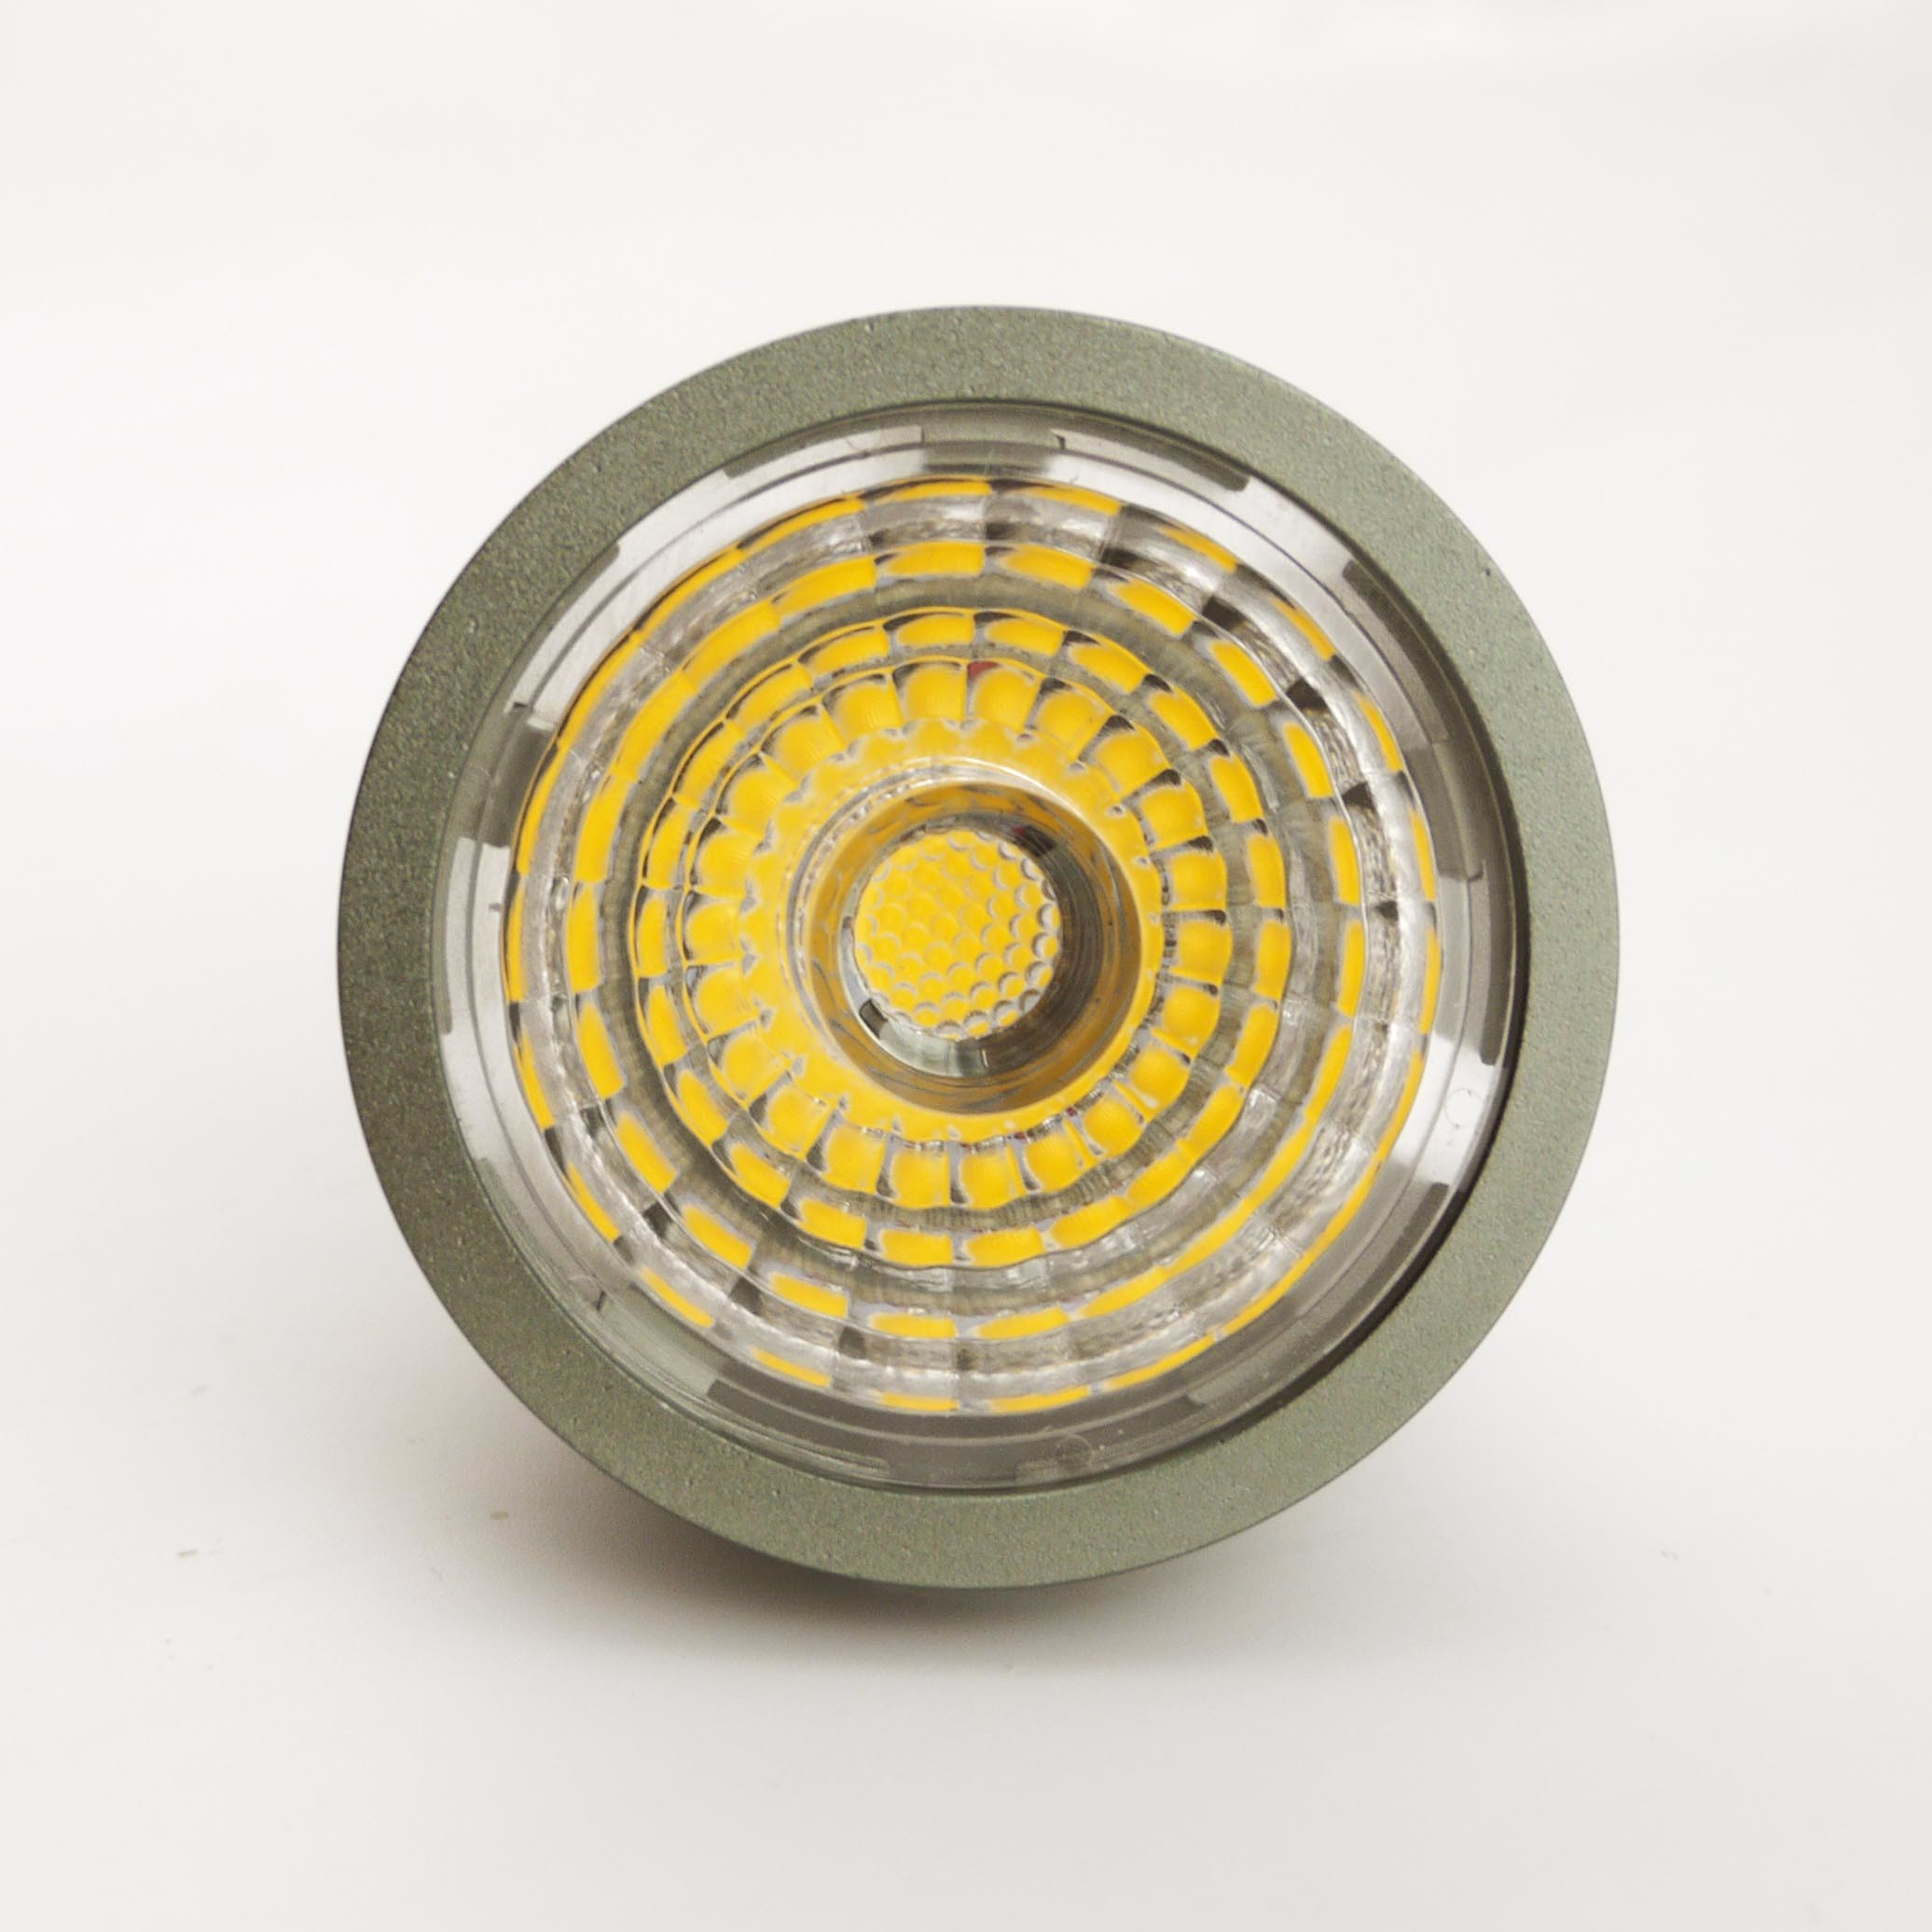 Aluminum 7W COB LED Recessed Downlight GU10 Bulb (LT9002-7W)